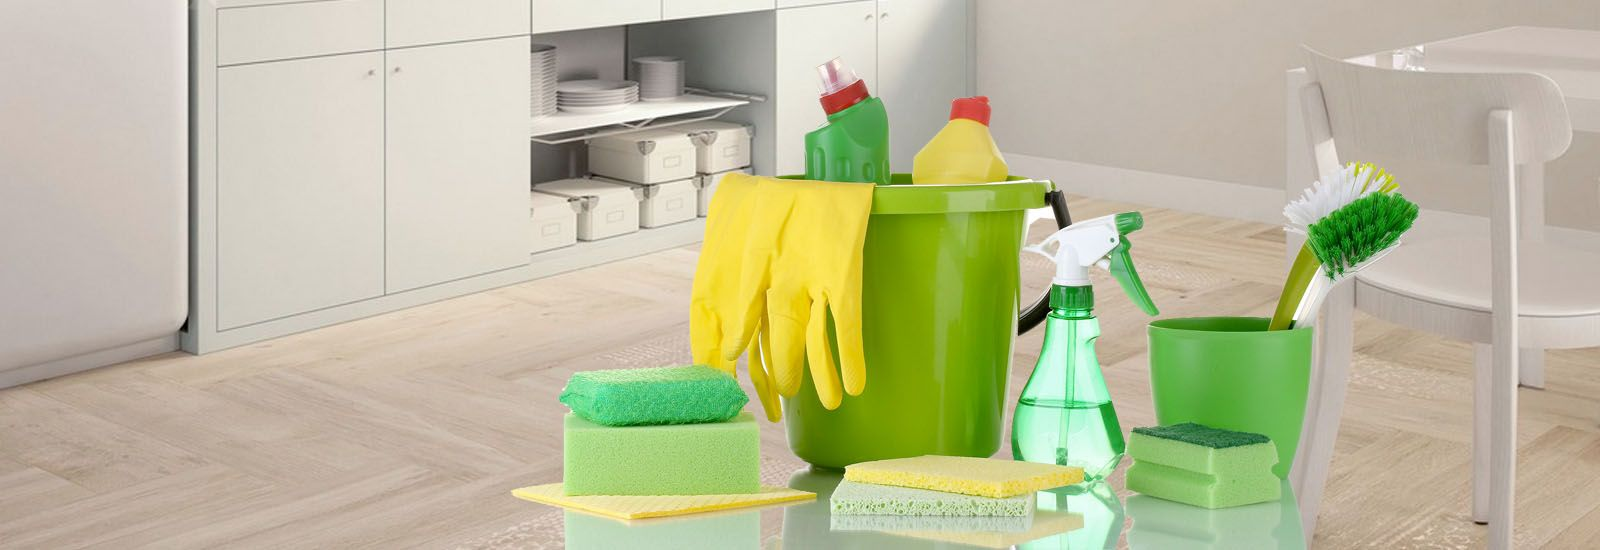 End Of The Lease Cleaning Services- Know All About It! - Home Improvements AU